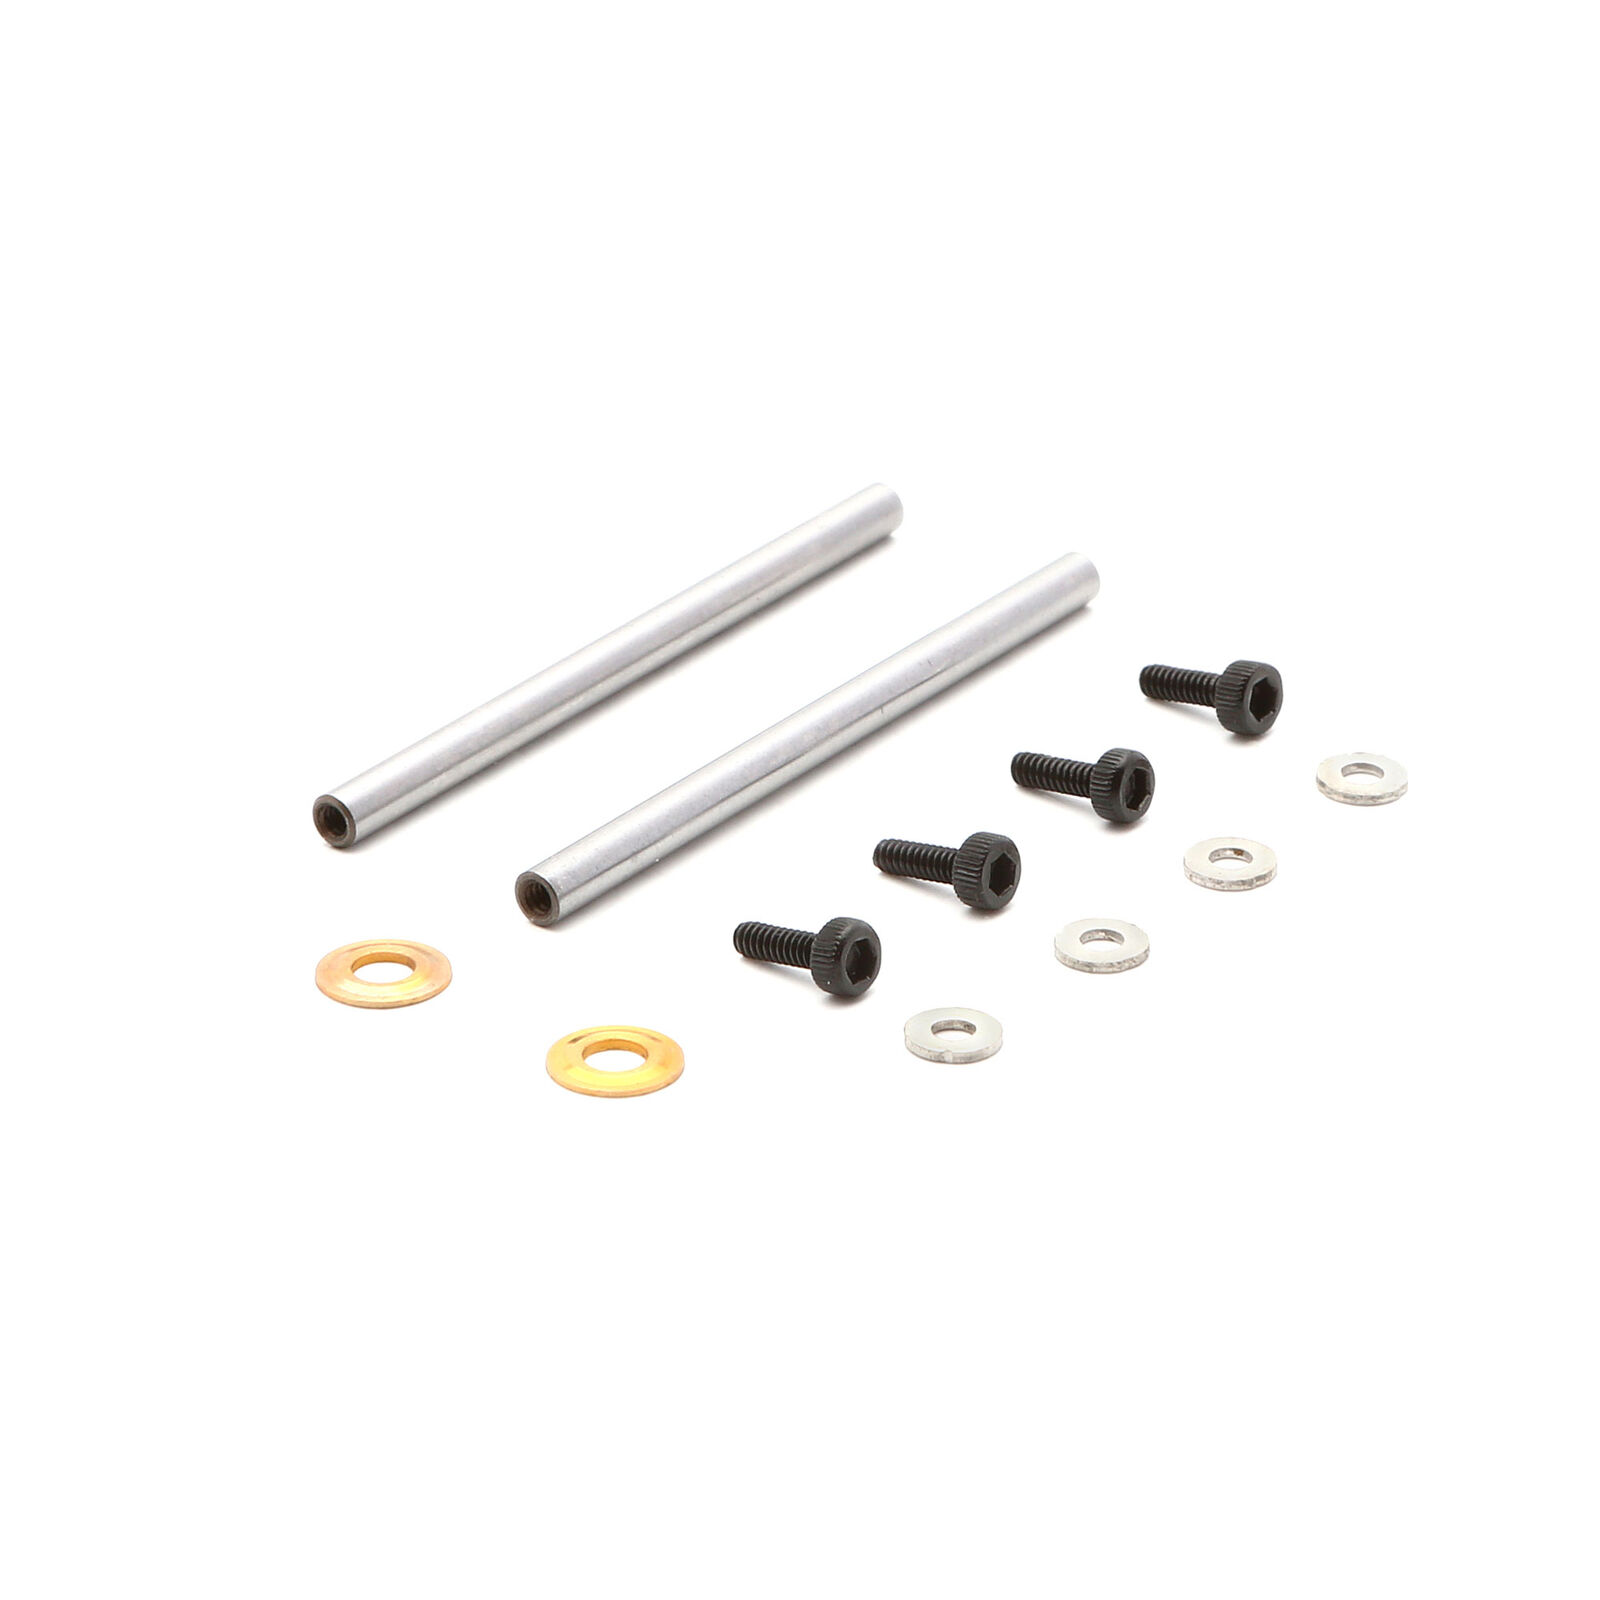 Feathering Spindle Set: 180 CFX, 130 S, Fusion 180, 150 S